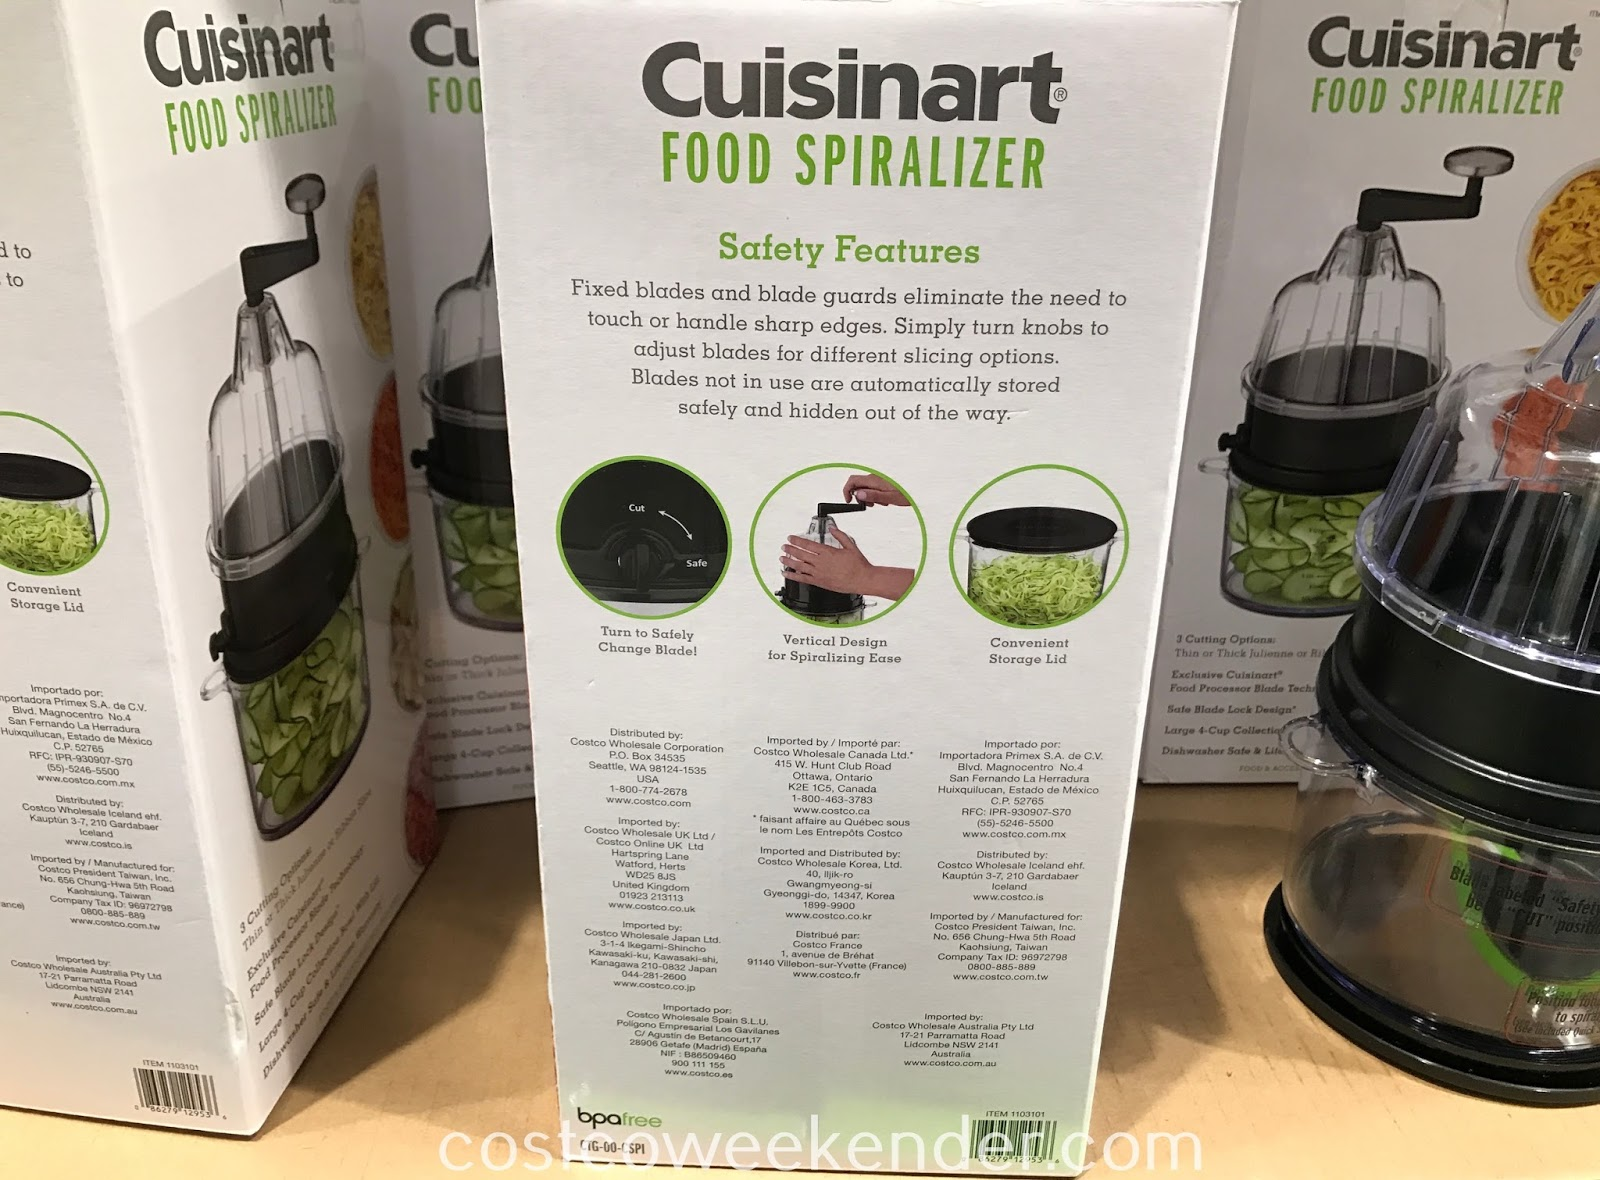 Cuisinart Food Spiralizer: great for any chef or home cook